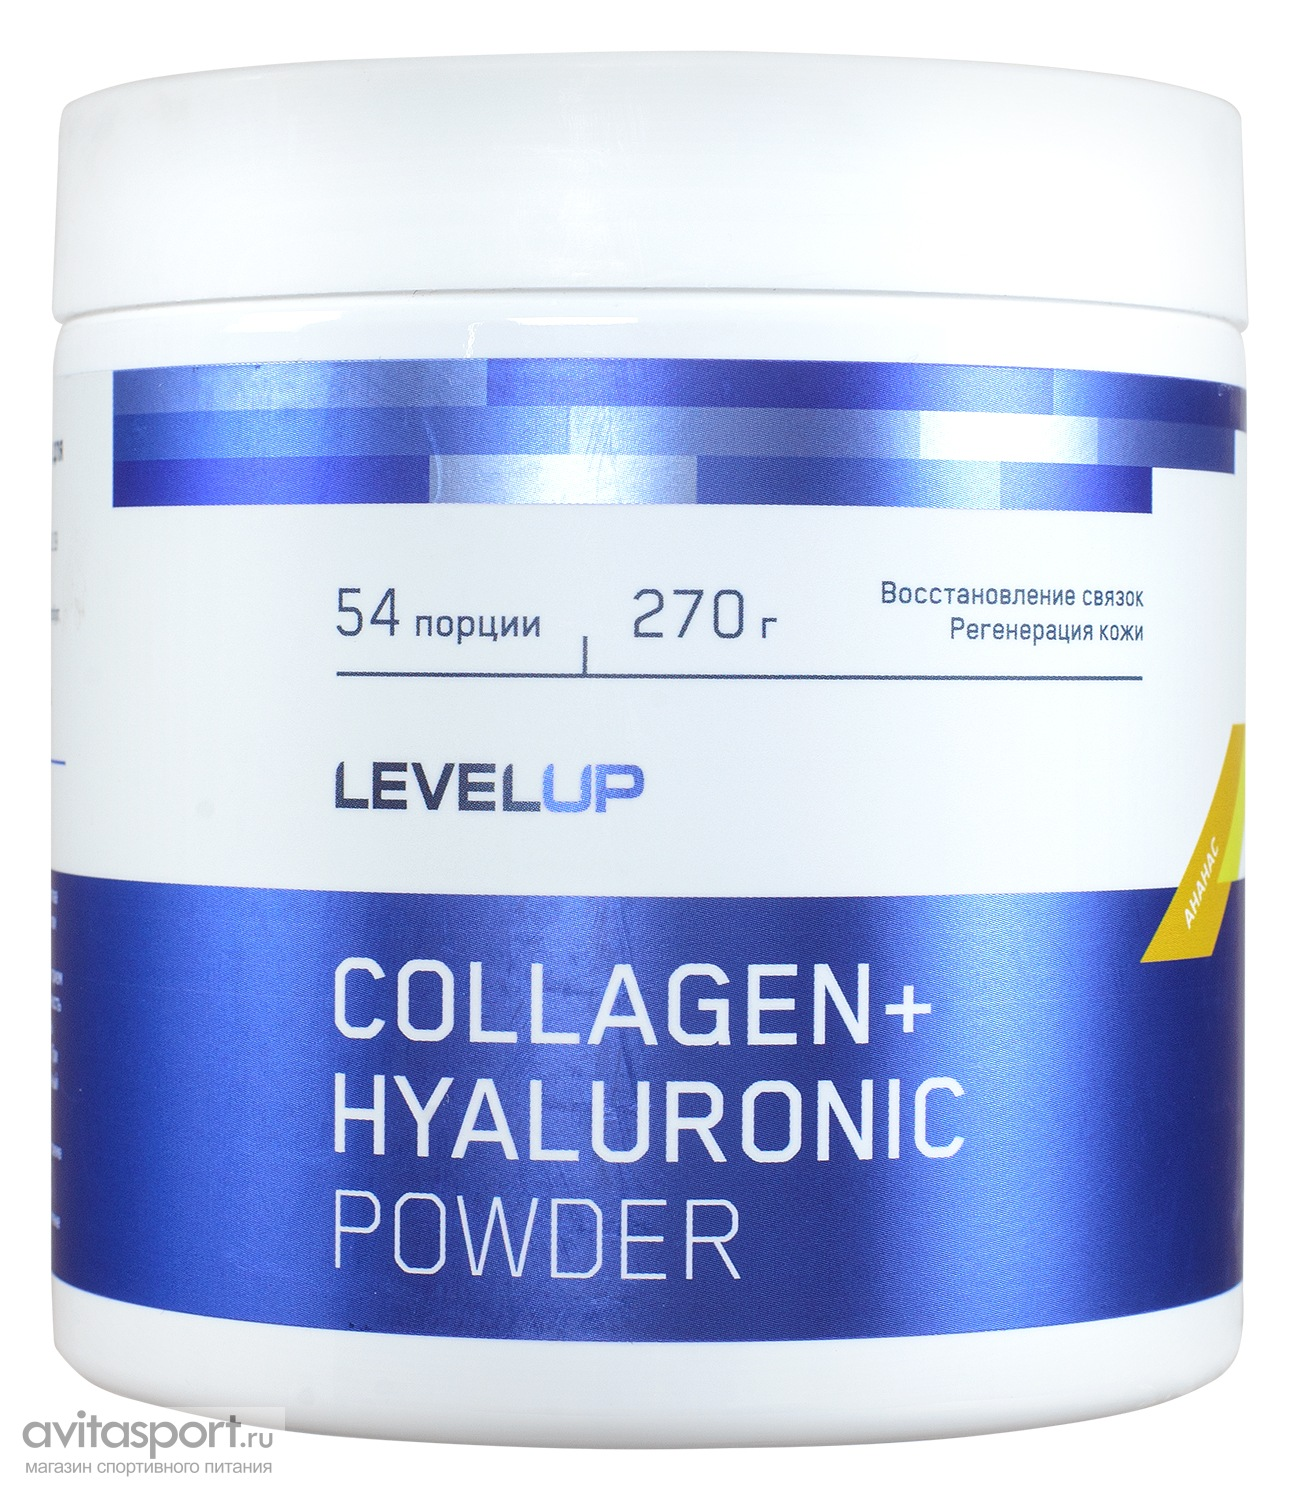 LevelUp Collagen + Hyaluronic Powder 270 г